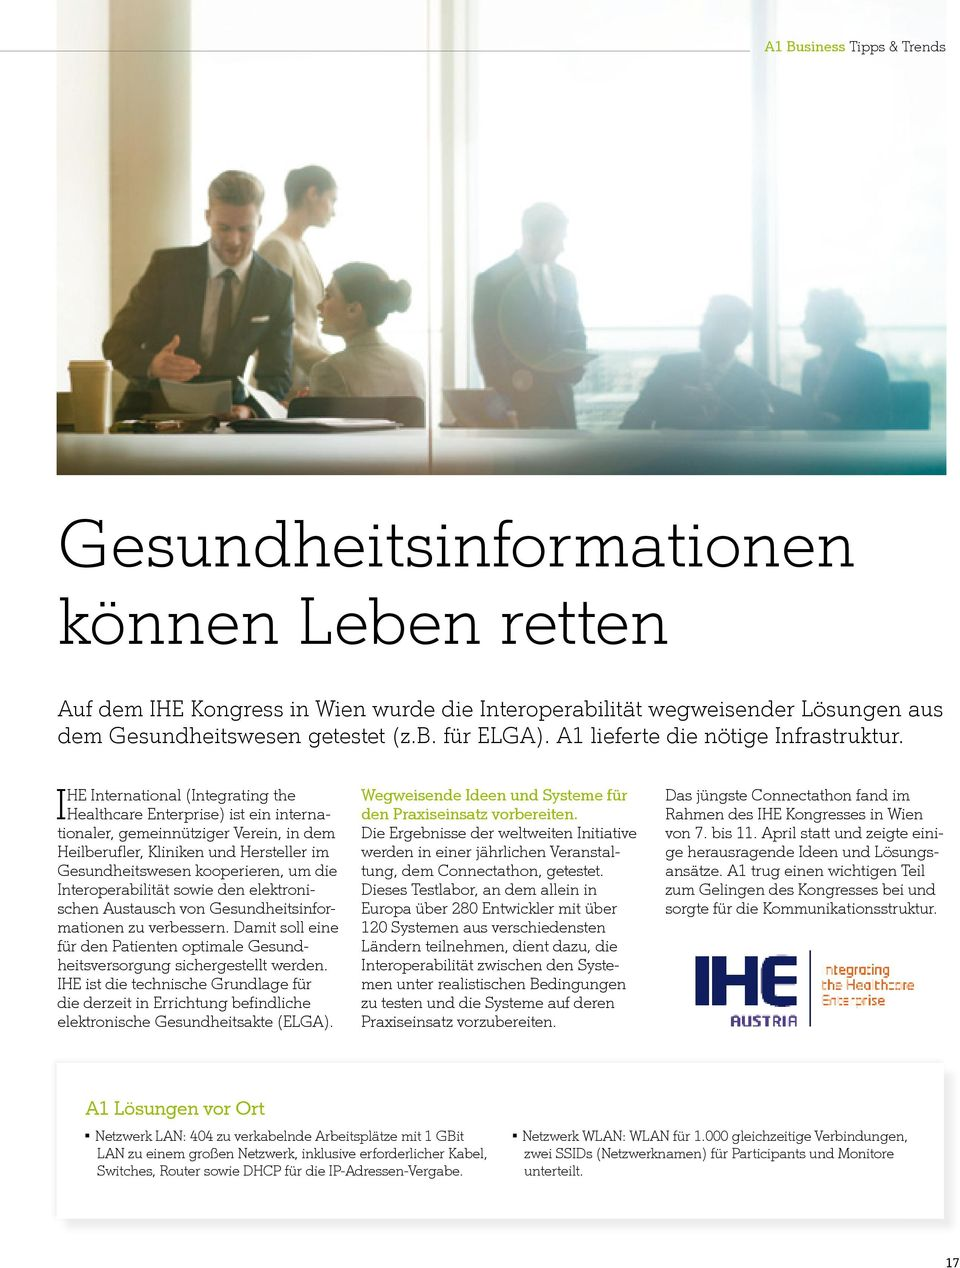 IHE International (Integrating the Healthcare Enterprise) ist ein internationaler, gemeinnütziger Verein, in dem Heilberufler, Kliniken und Hersteller im Gesundheitswesen kooperieren, um die